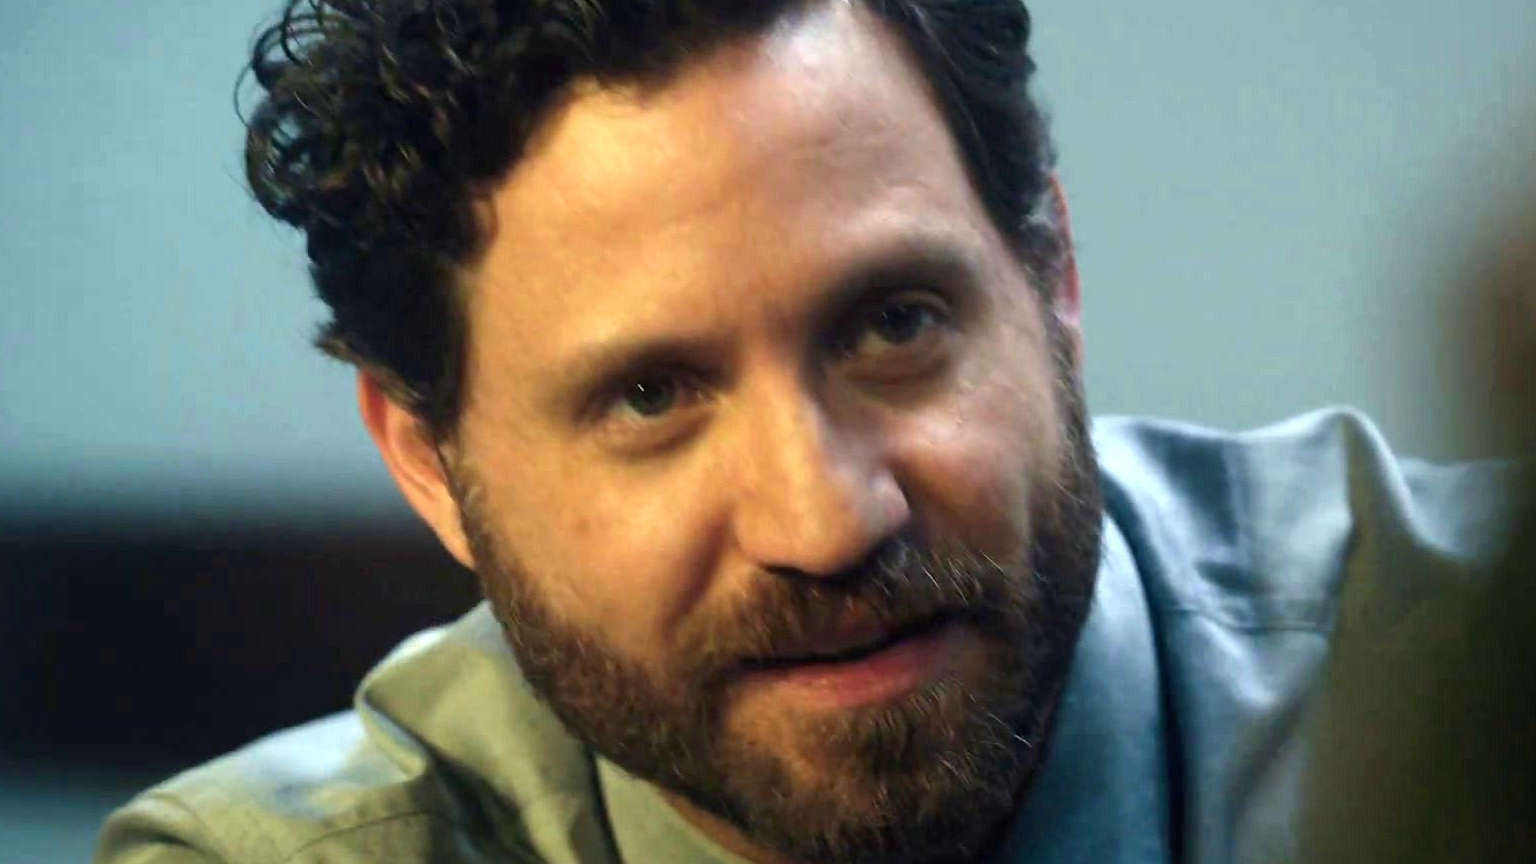 The Undoing: The Surprising Lengths Edgar Ramirez Went To For His Character